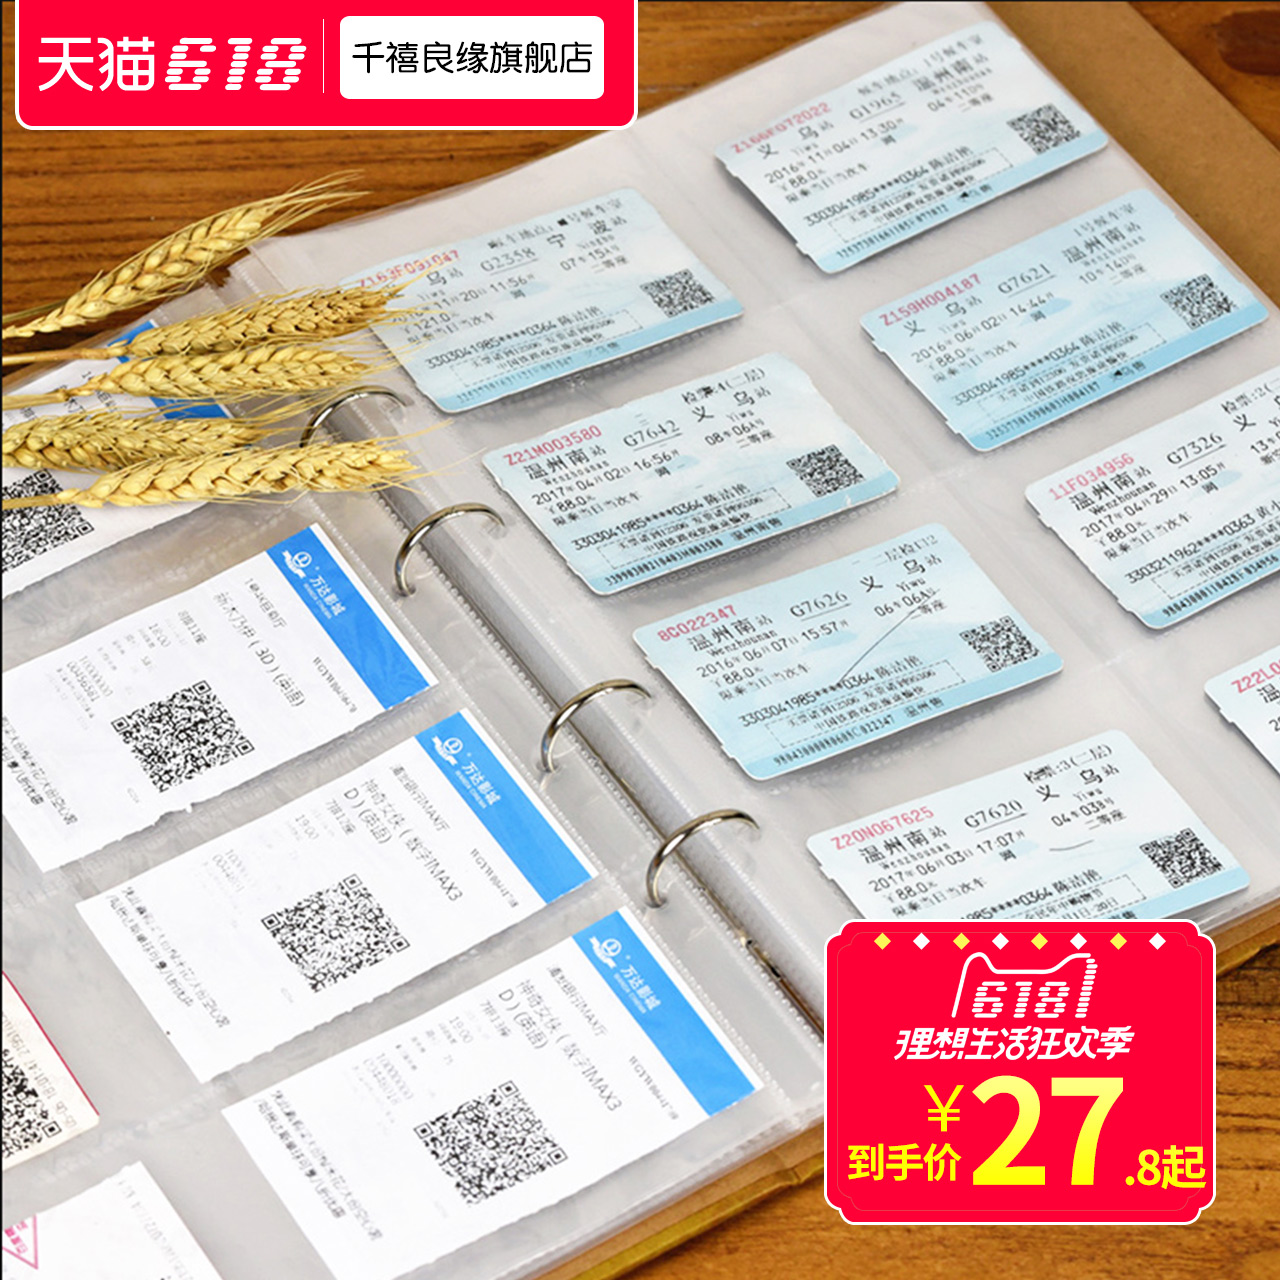 Movie tickets, ticket collection, train, airplane, travel ticket, souvenir collection, photo album, bill, etc.